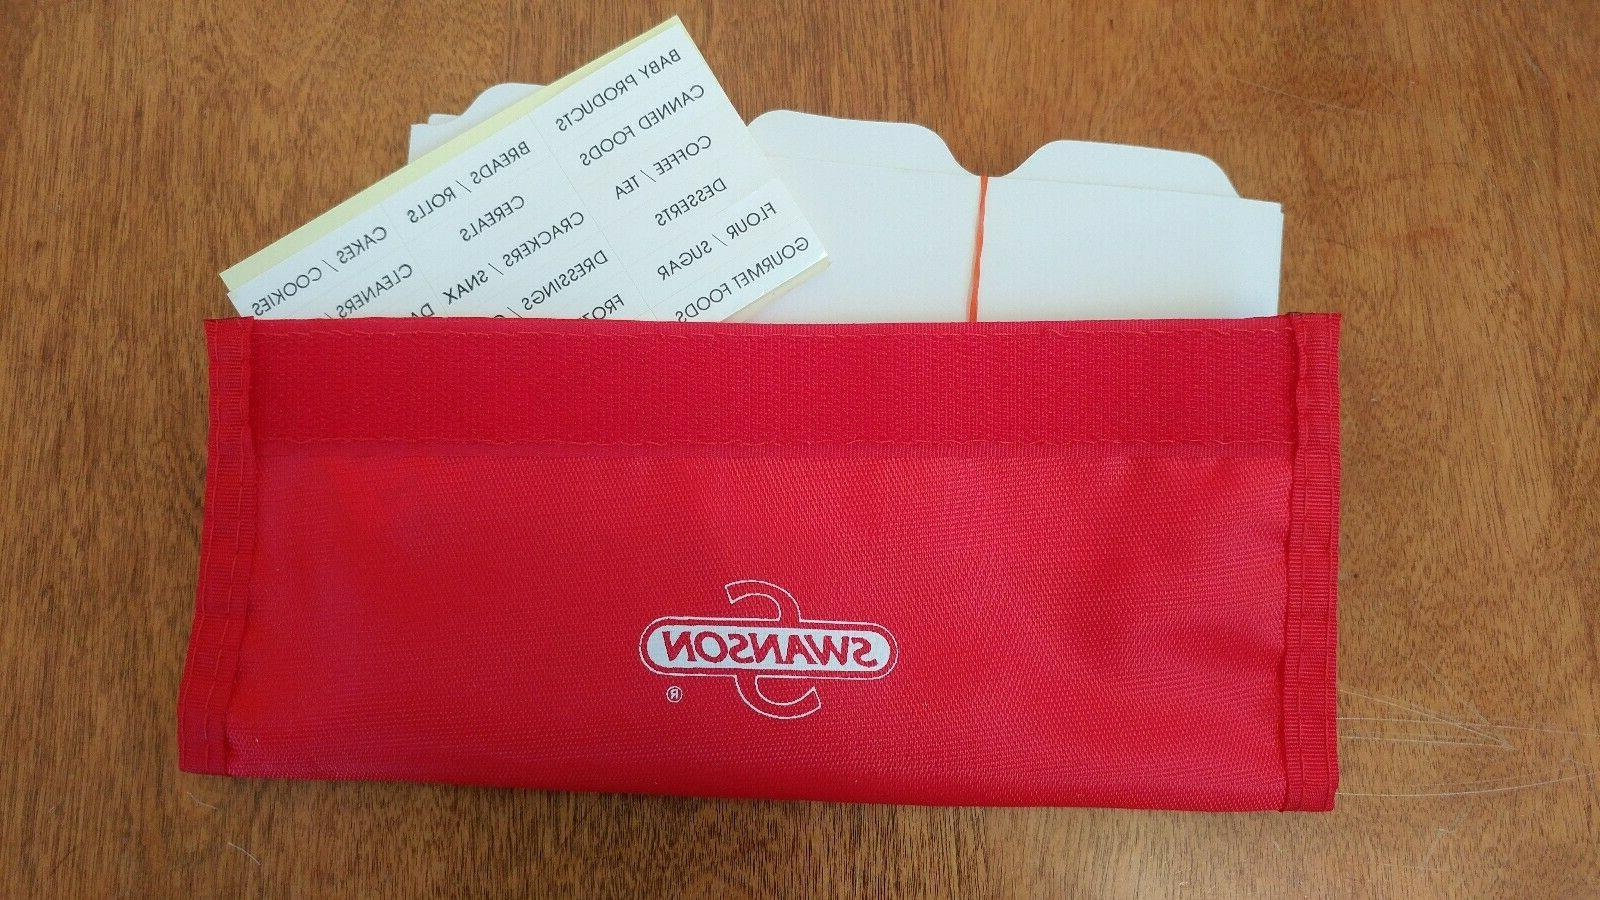 Vtg Swanson Wallet w/ Dividers Labels Stickers Nylon? NEW